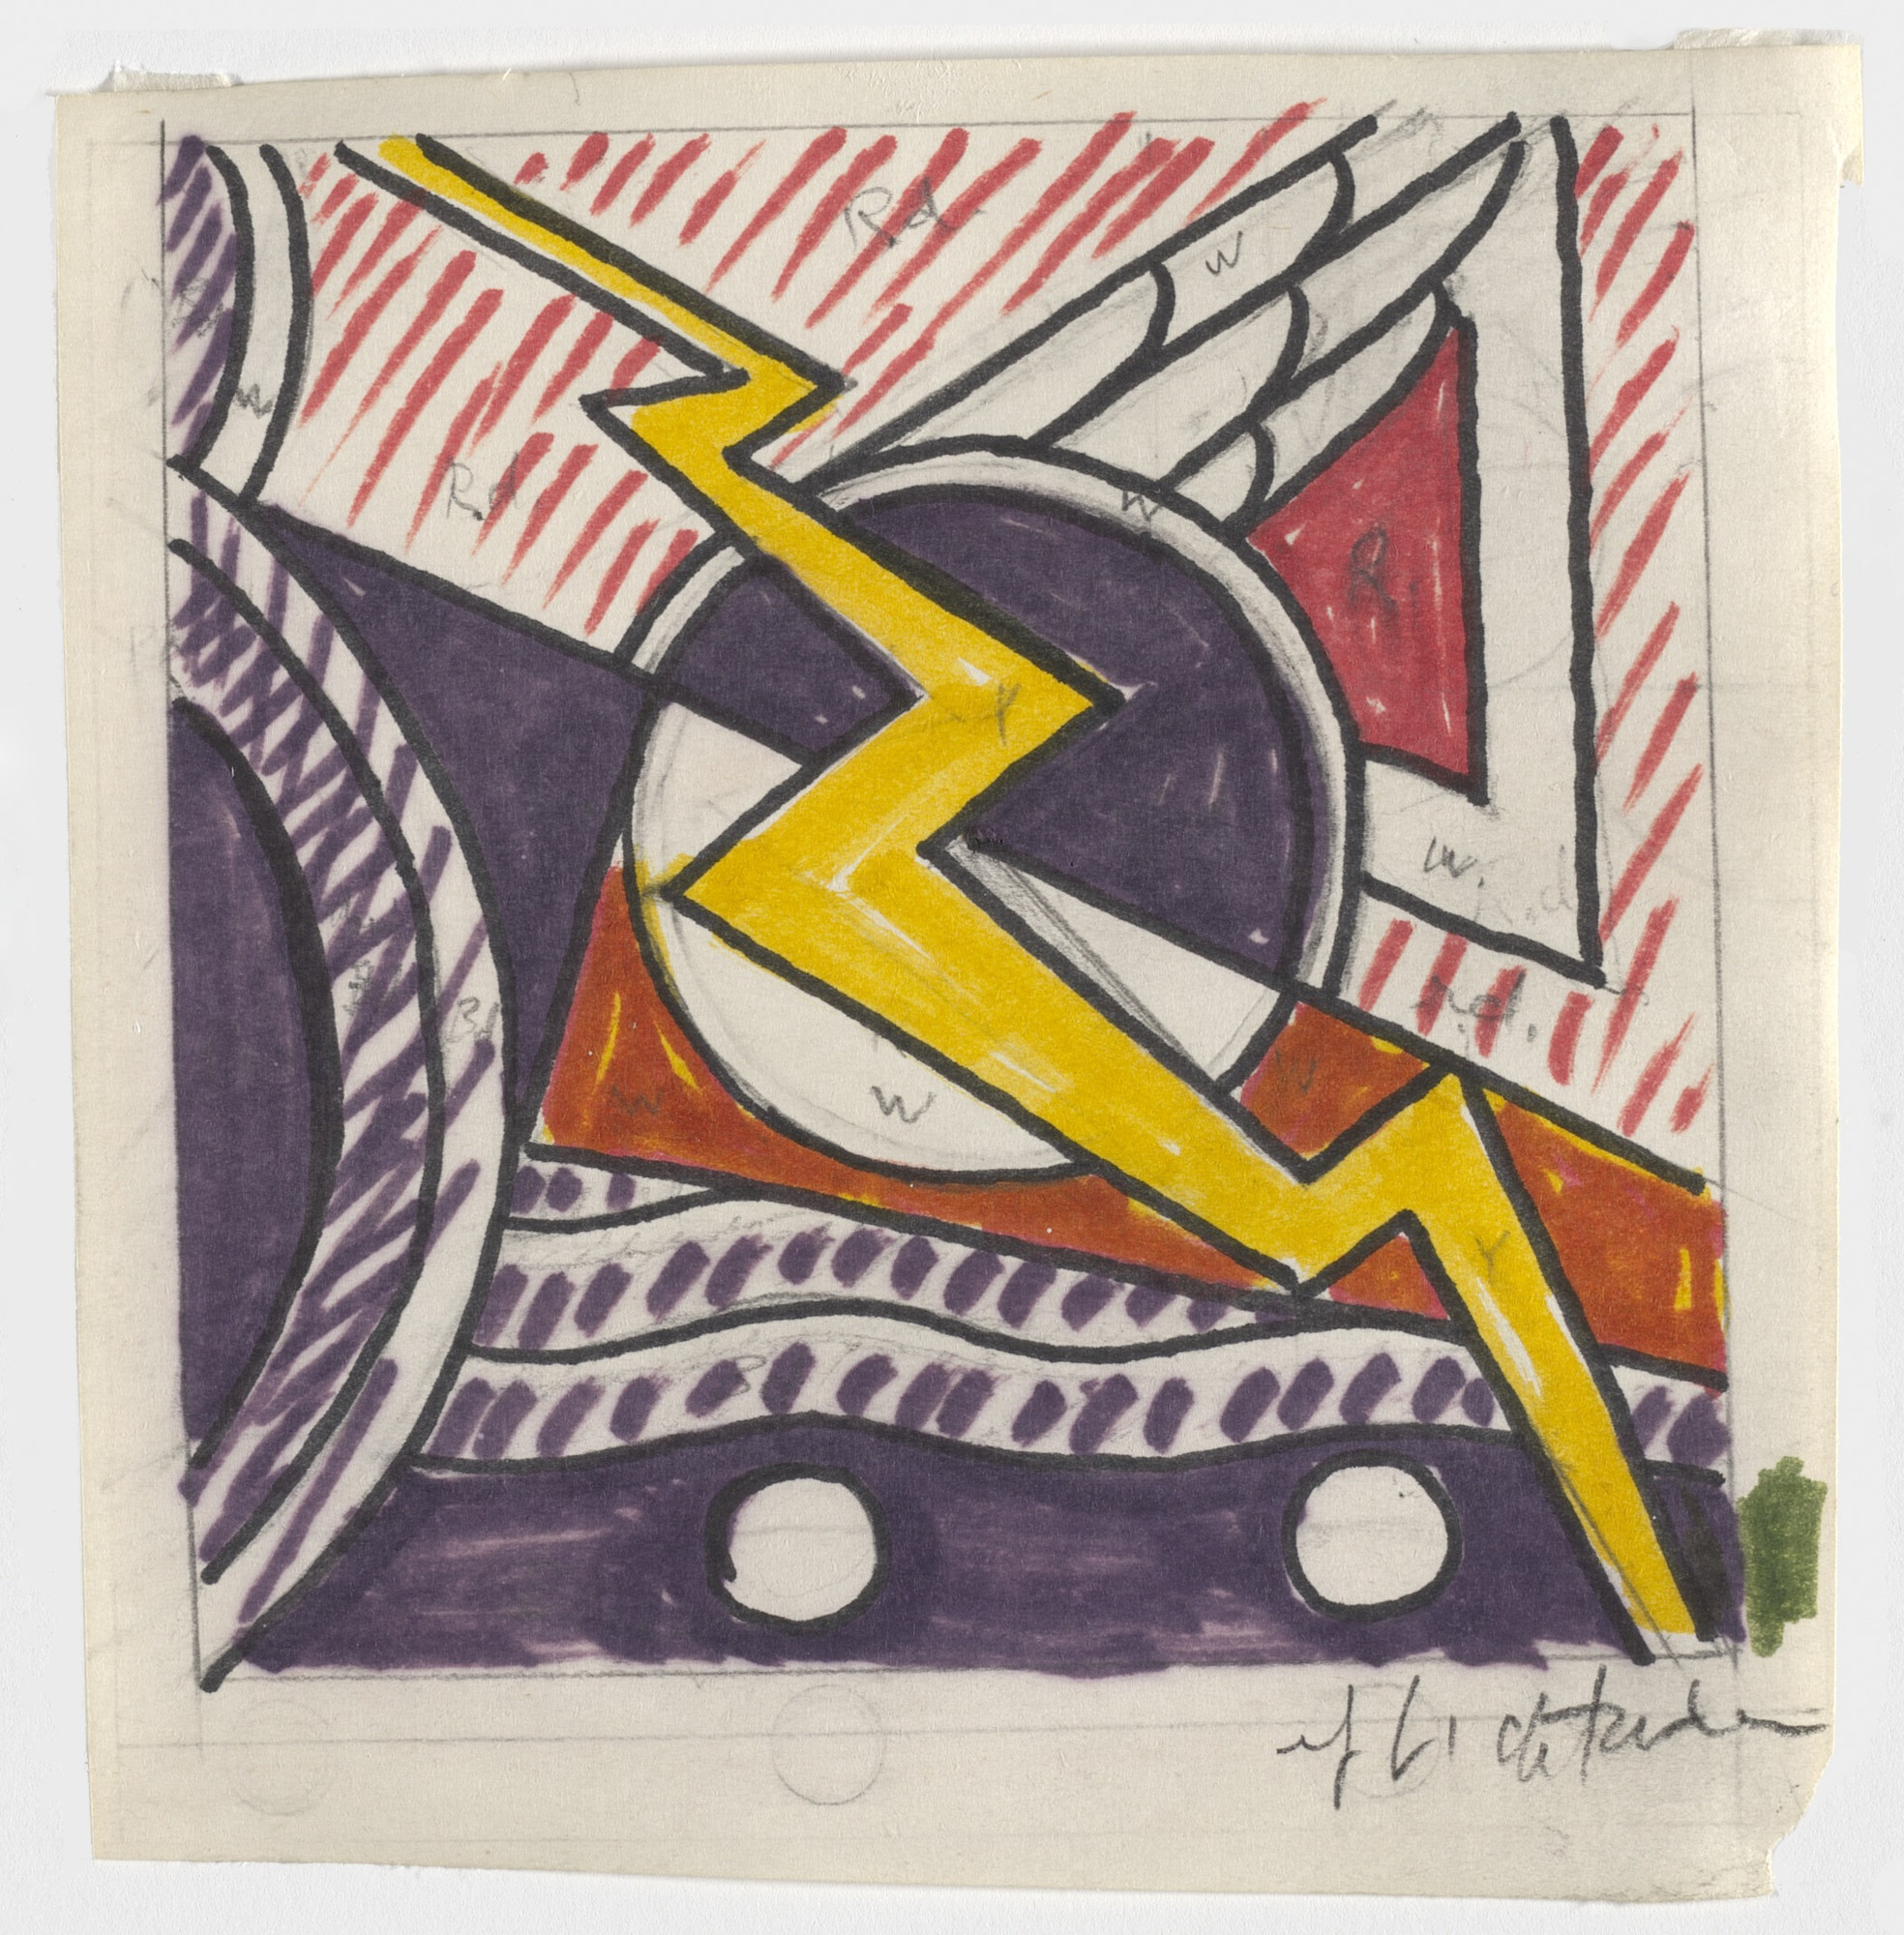 Roy Lichtenstein. Study for Modern Painting with Bolt. 1966